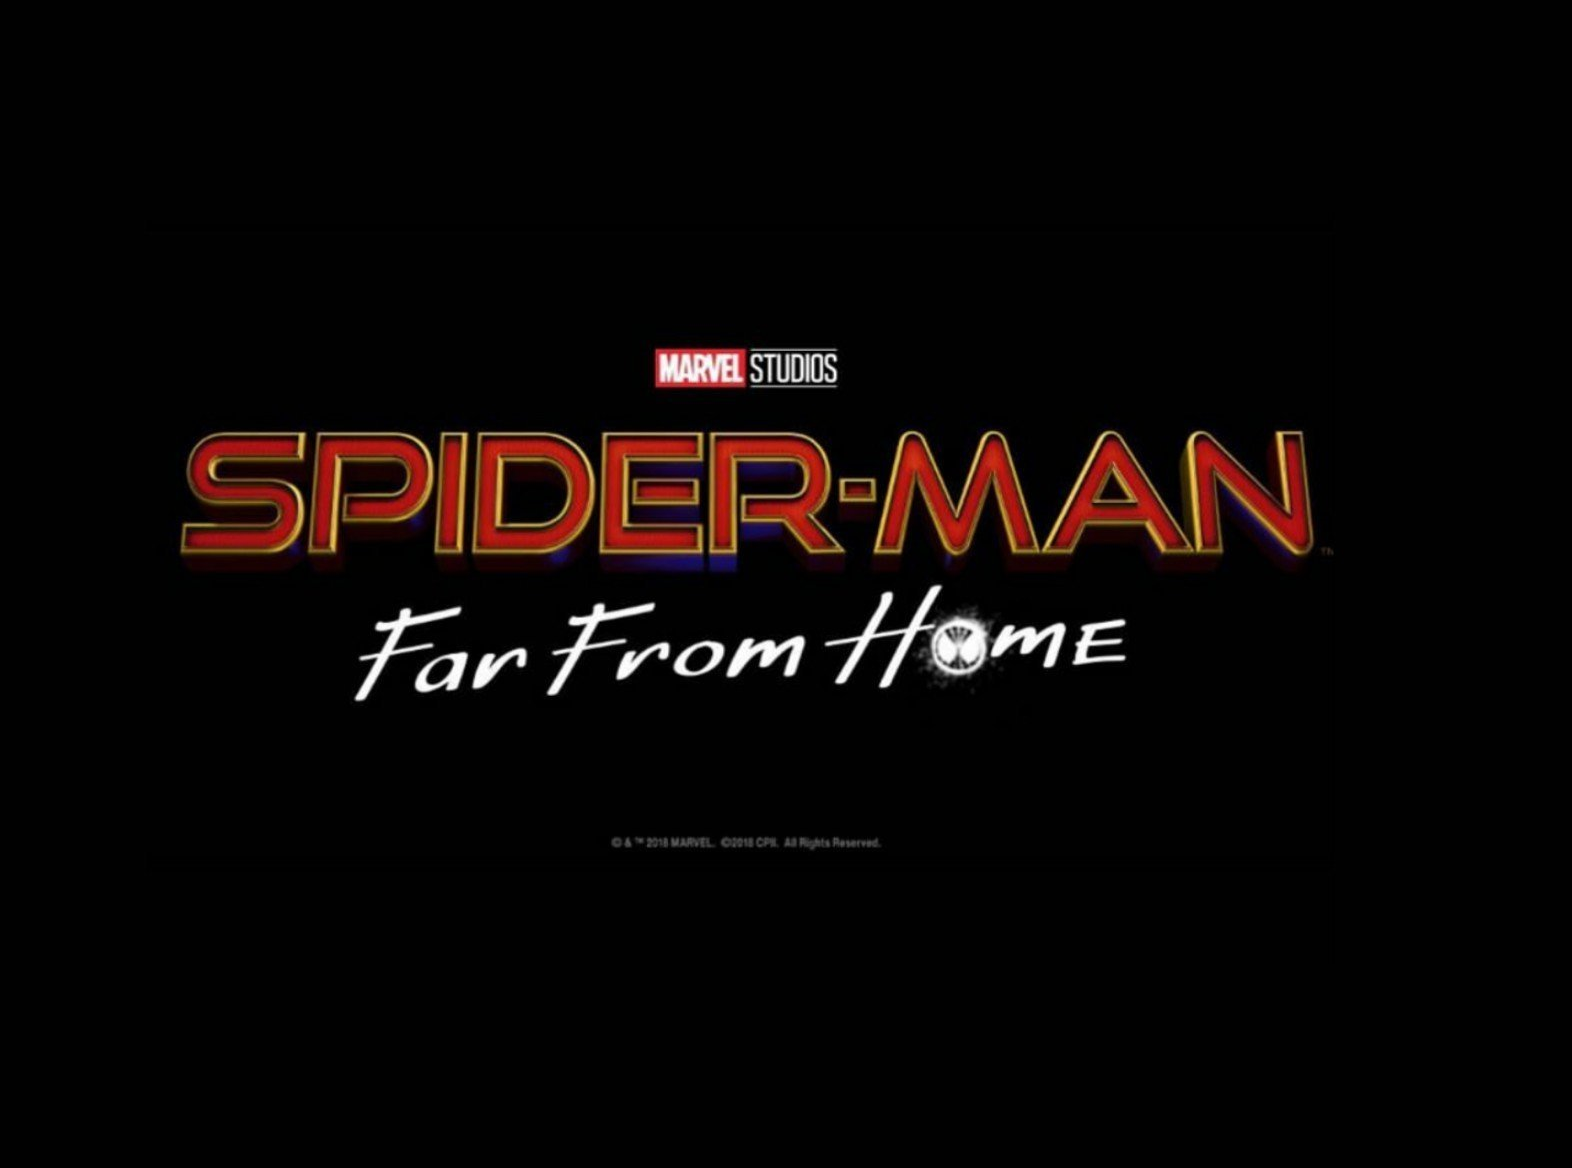 'Spider-Man: Far From Home' - Trailer